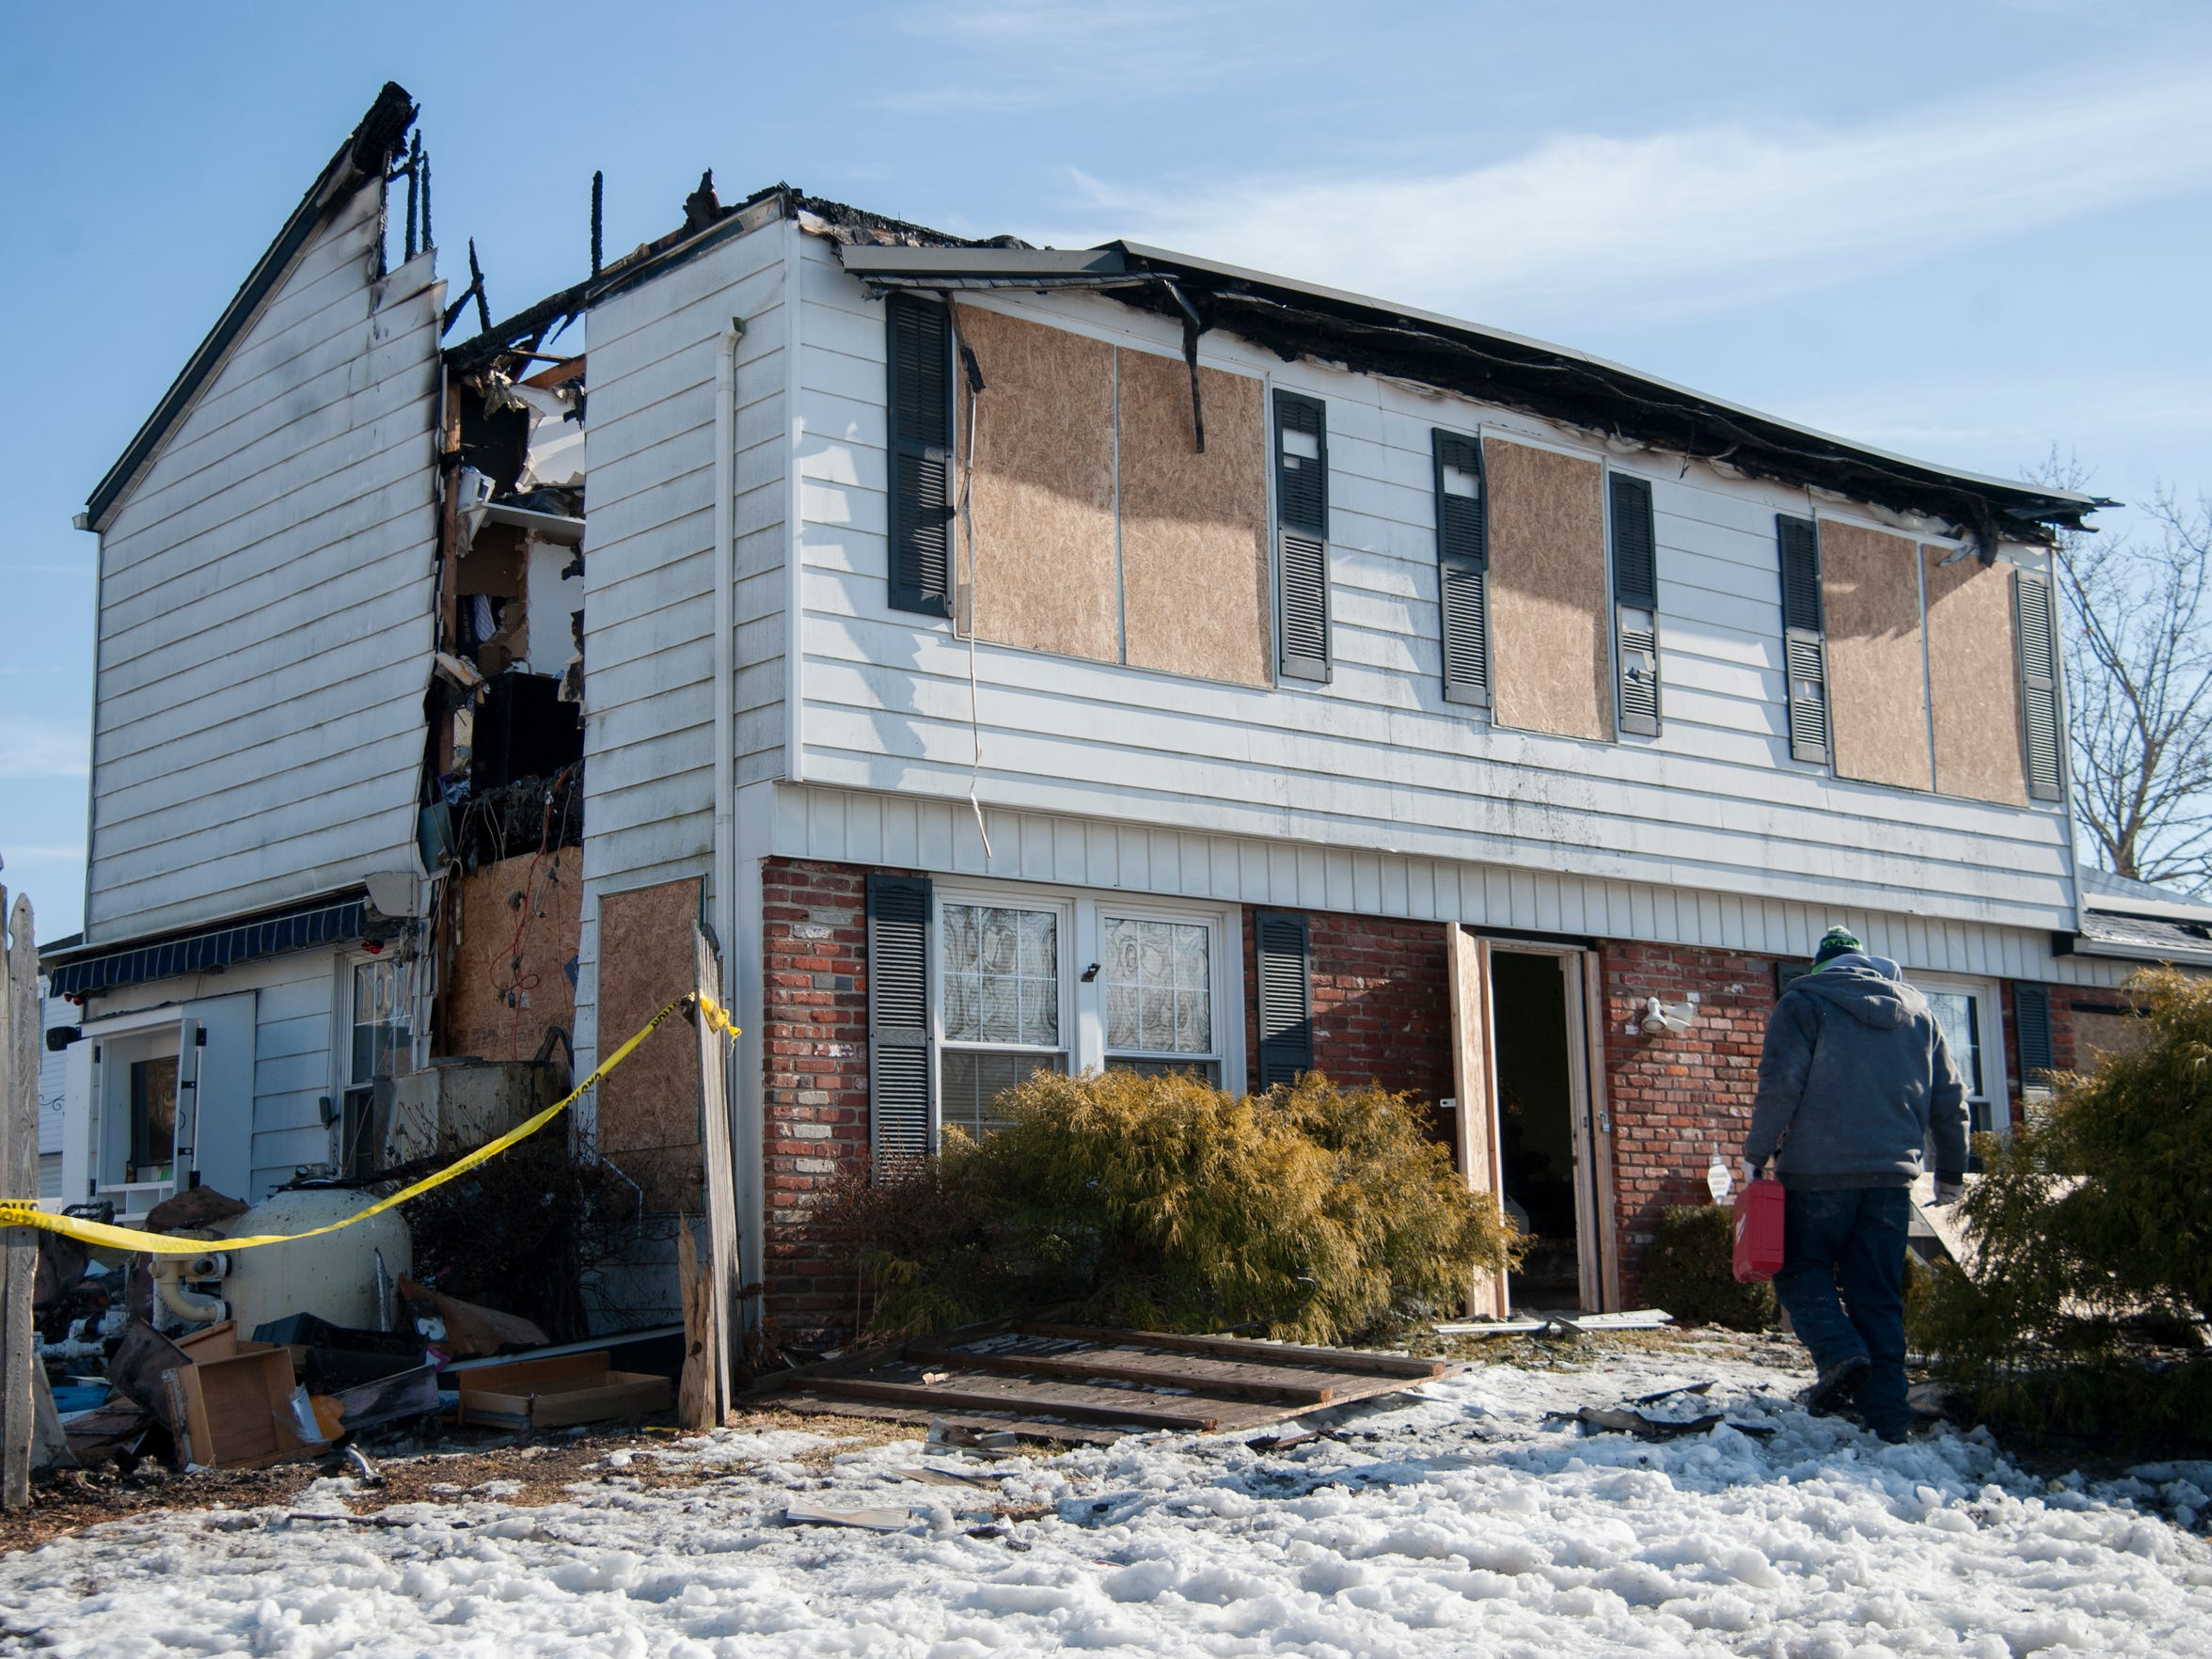 The Williamstown home of Joe Parisi and his family was destroyed by fire Sunday morning. Parisi's daughter Donna, 25, is a volunteer firefighter with the Williamstown Fire Company. The fire company launched a collection for the family Monday seeking monetary donations and gift cards for groceries and essentials.